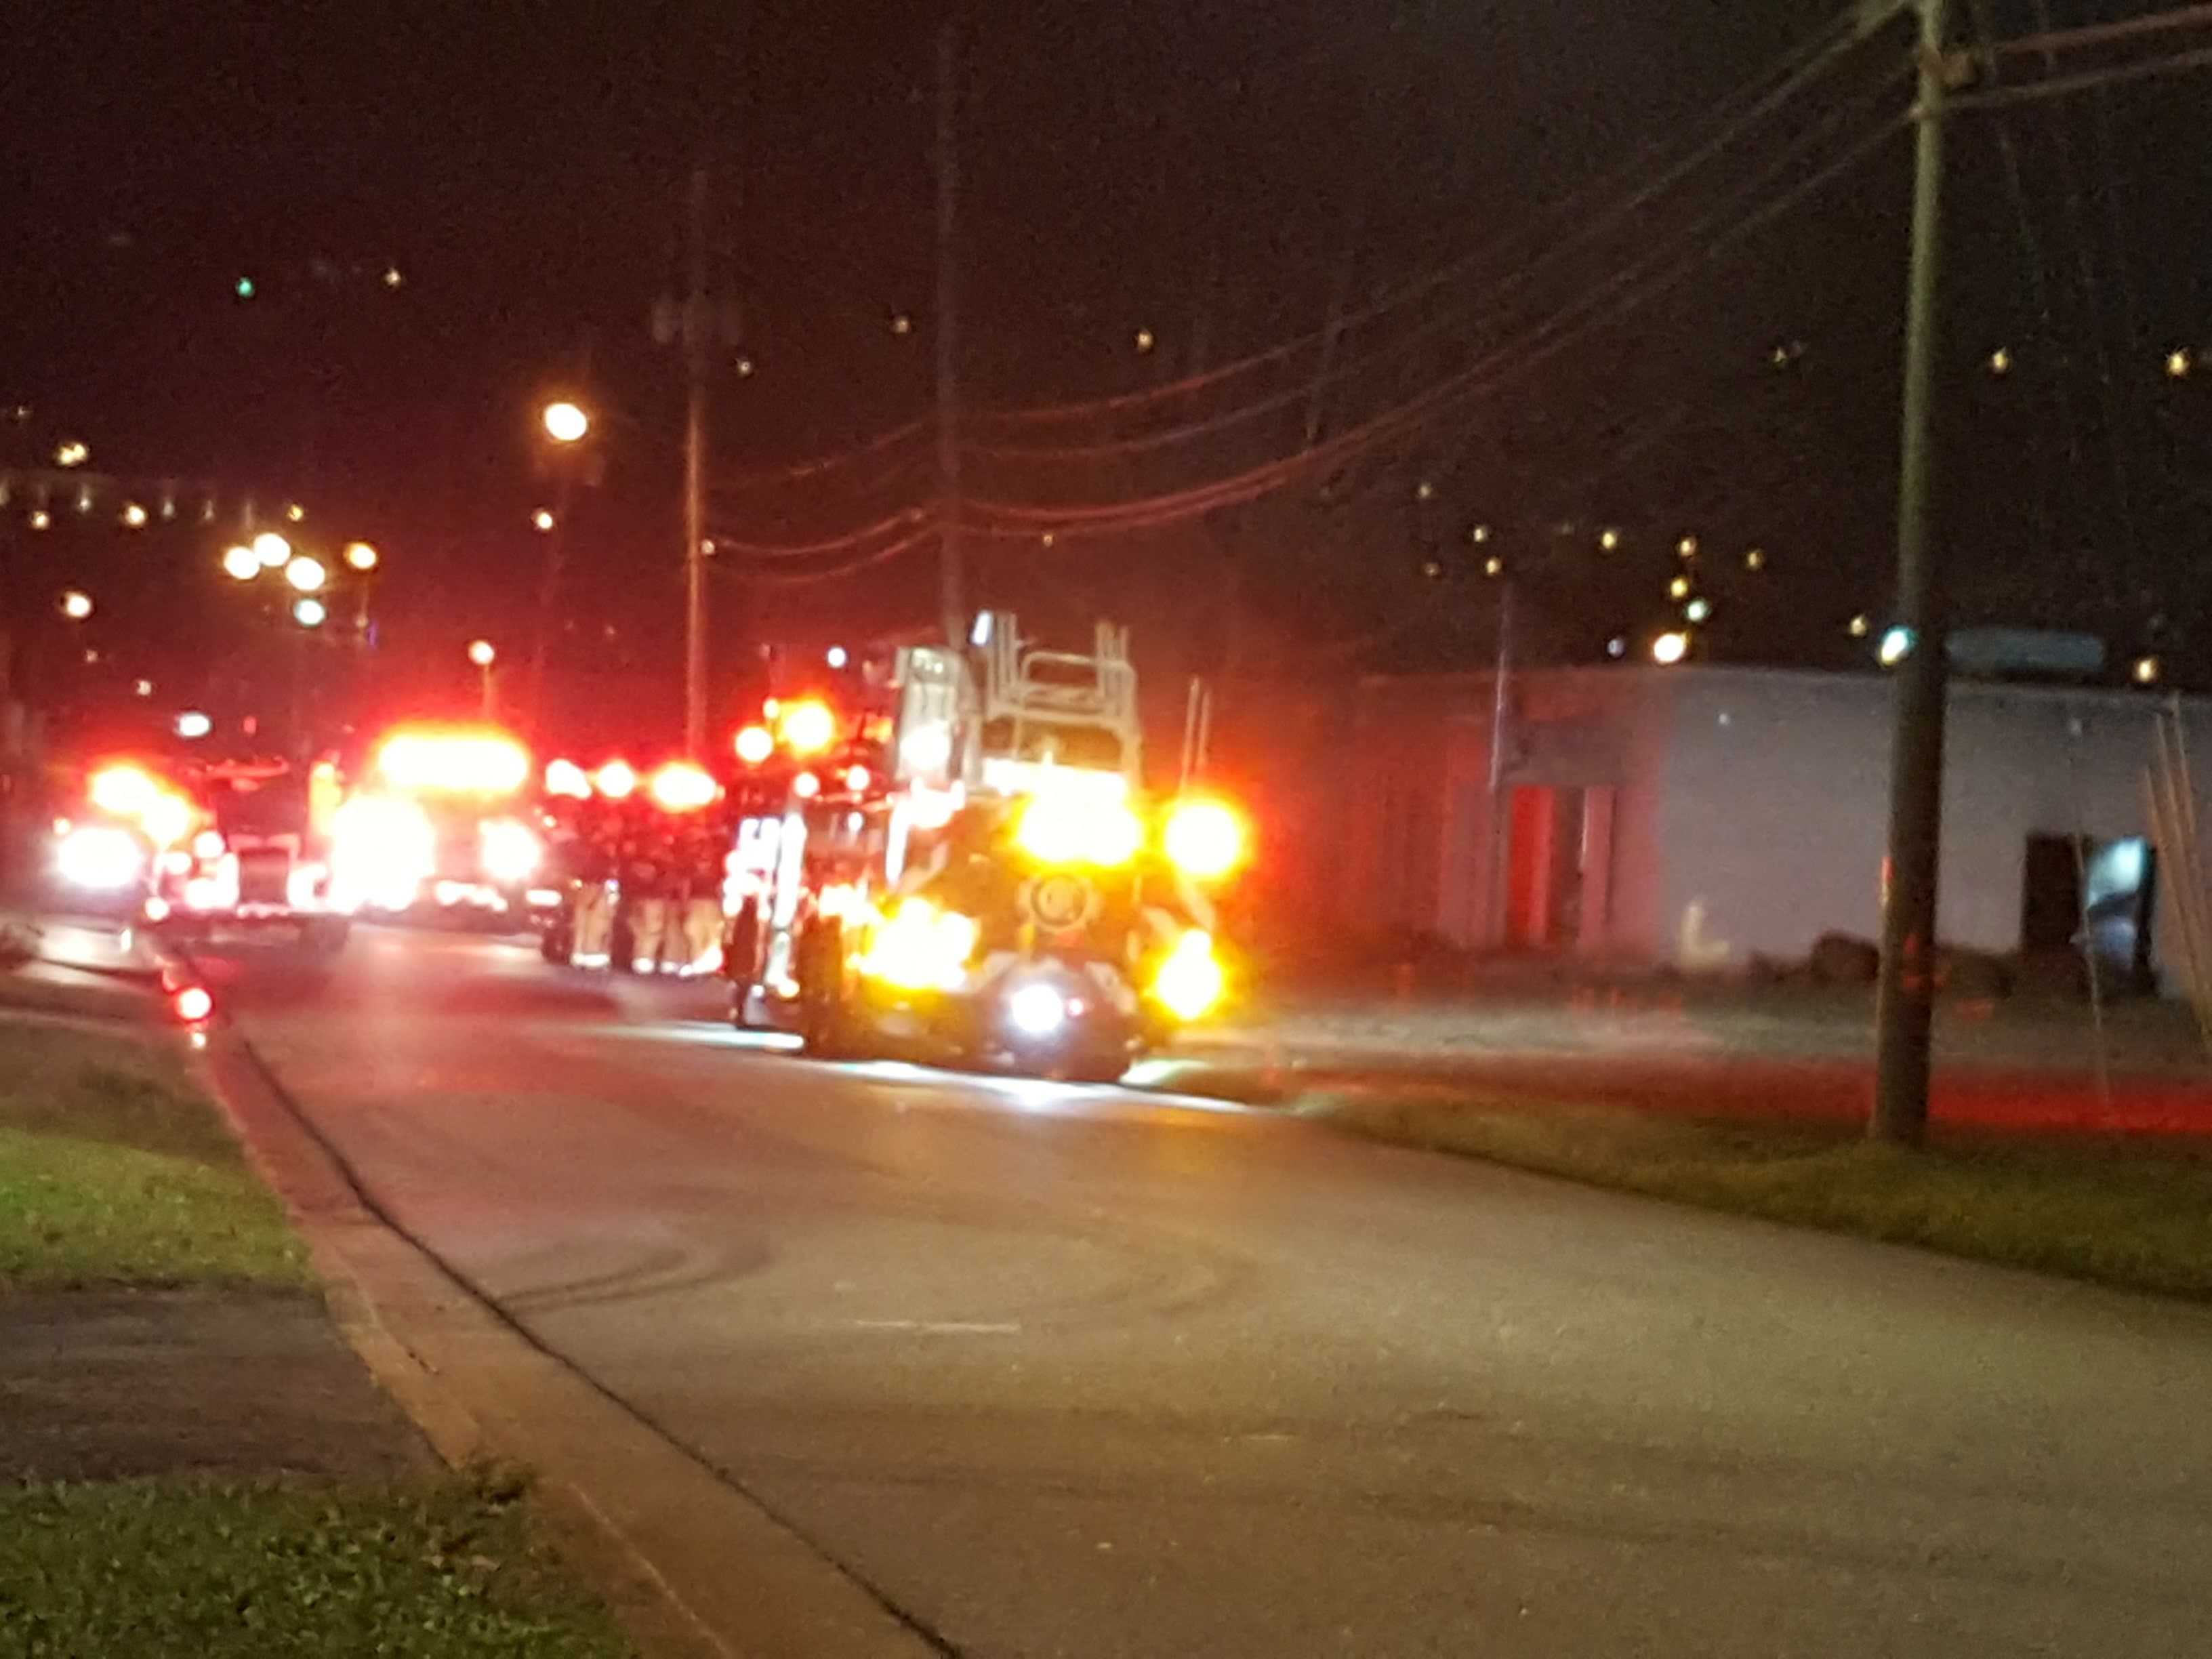 The Chattanooga Fire Department (CFD) quickly put out a fire at a local Christian radio station Tuesday night. (Image courtesy Chief Michael W. Crites, Tennessee Protective Services)